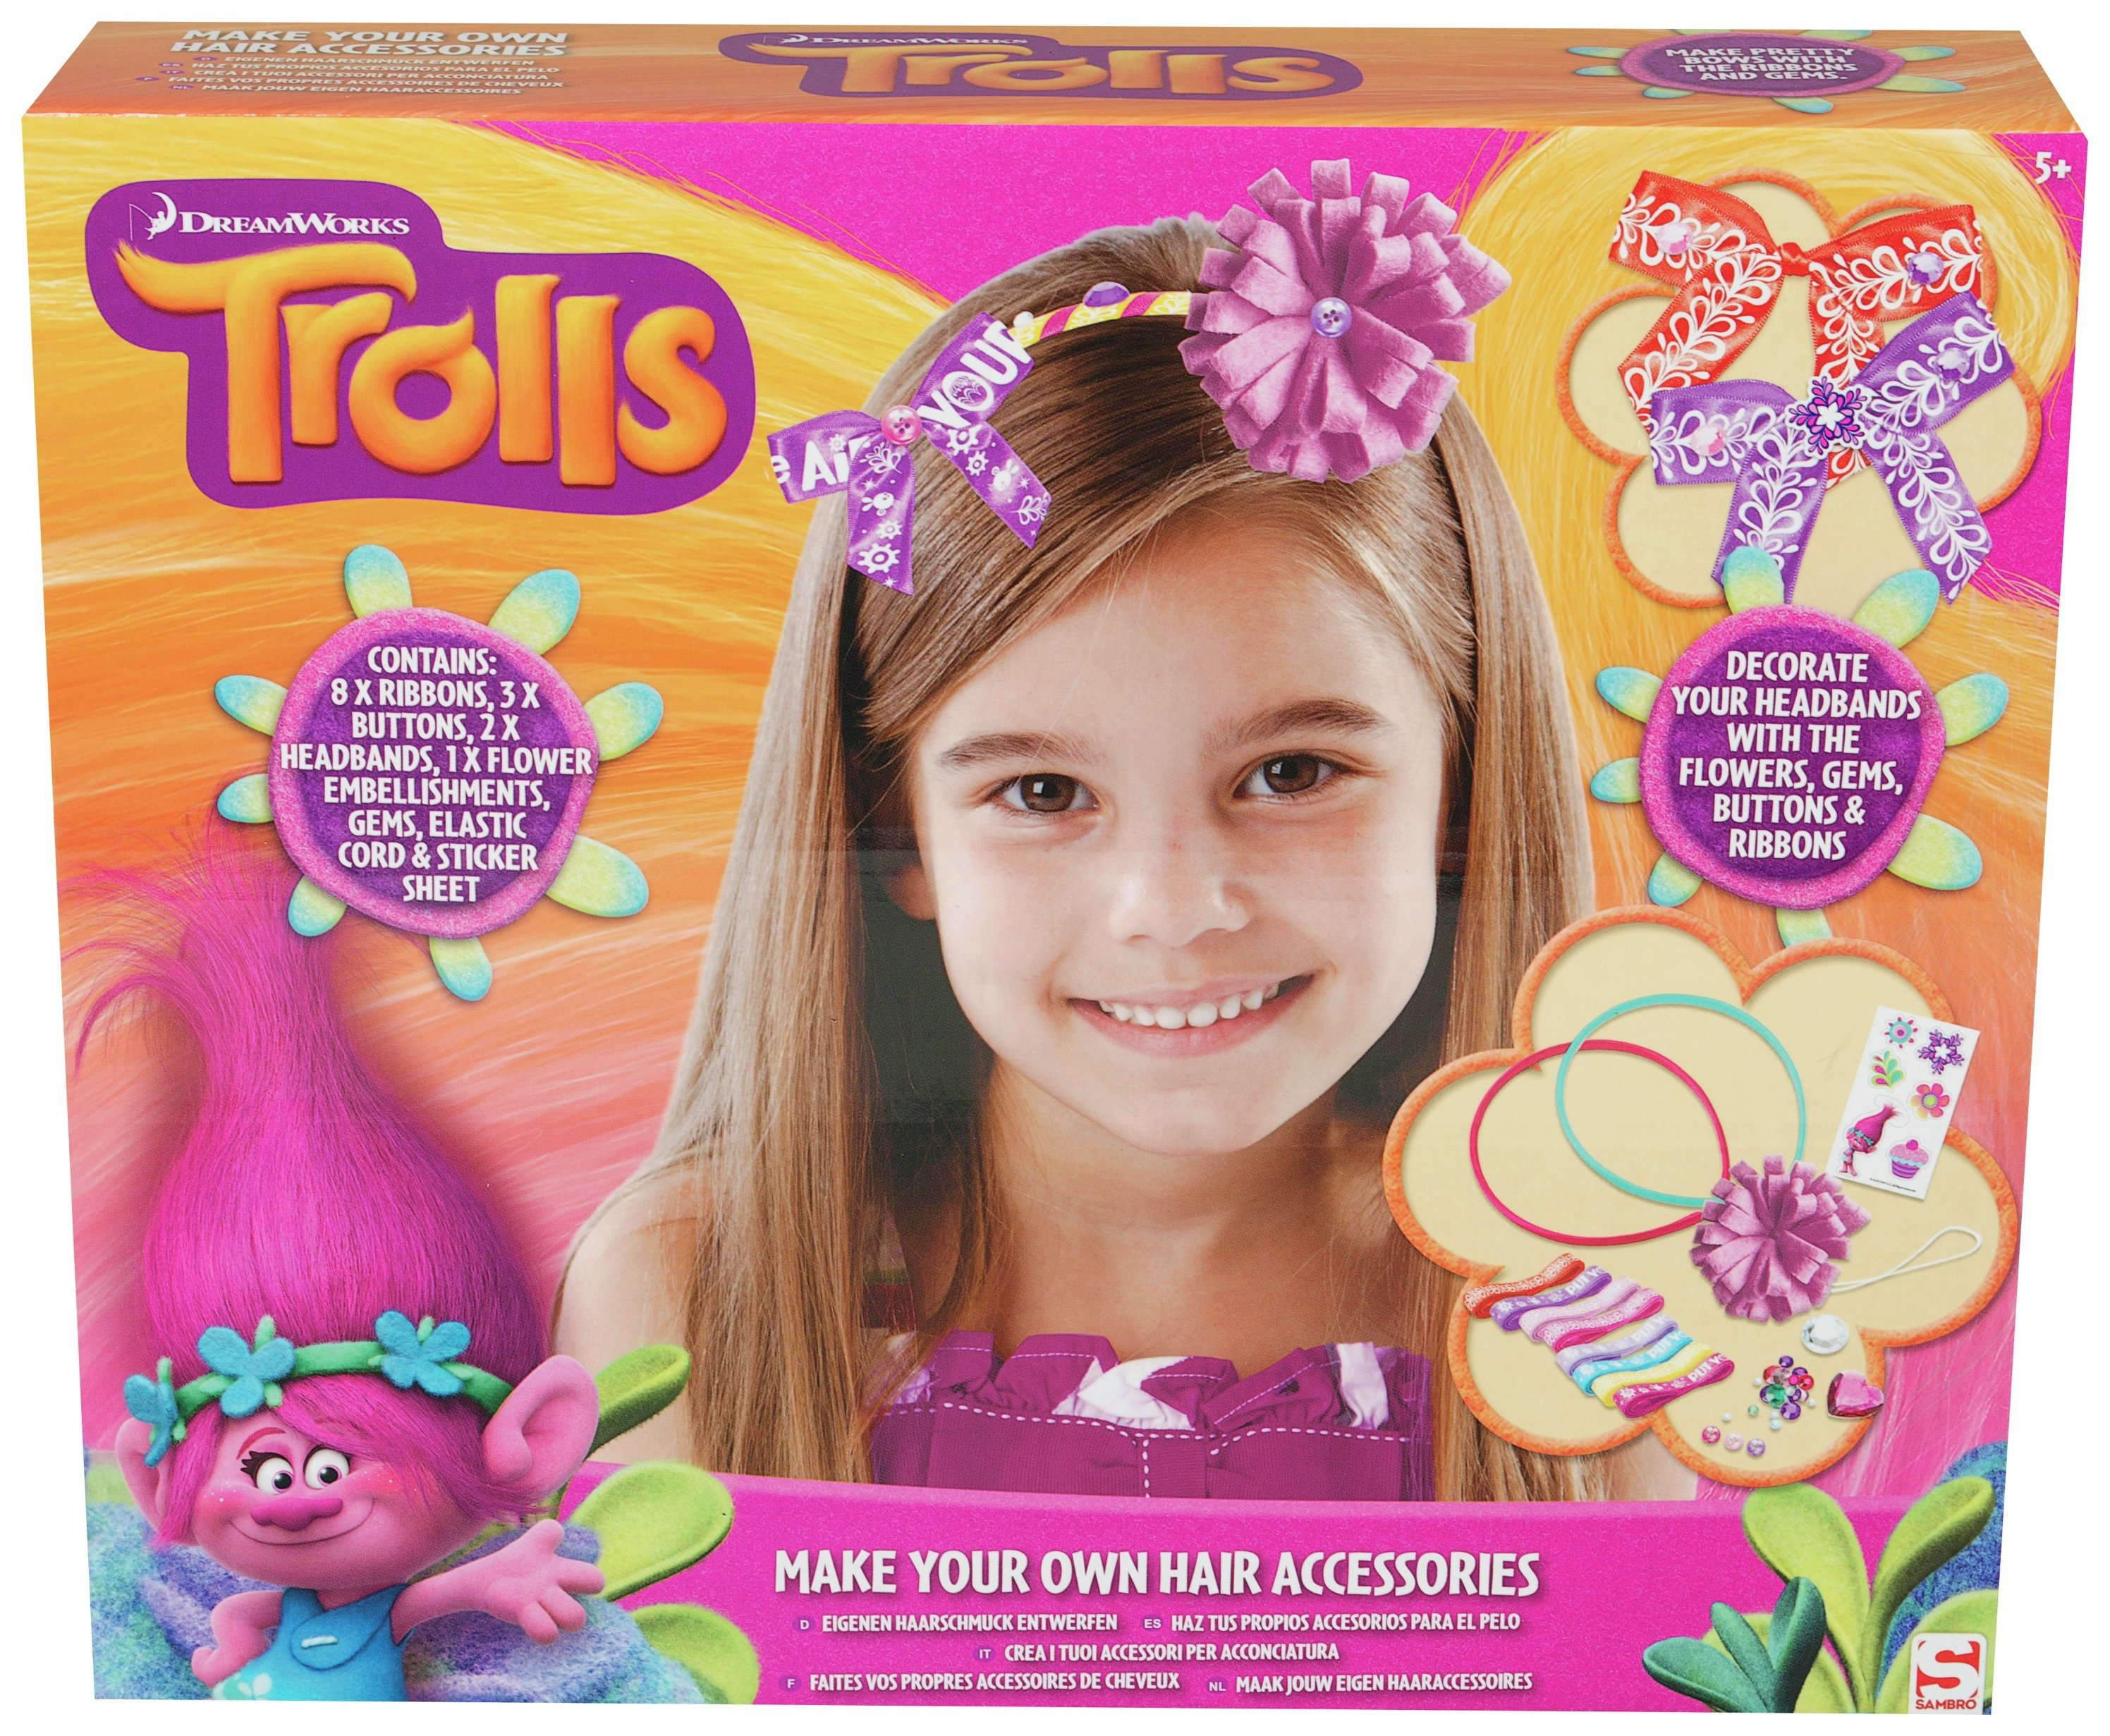 Trolls Make Your Own Hair Accessories.